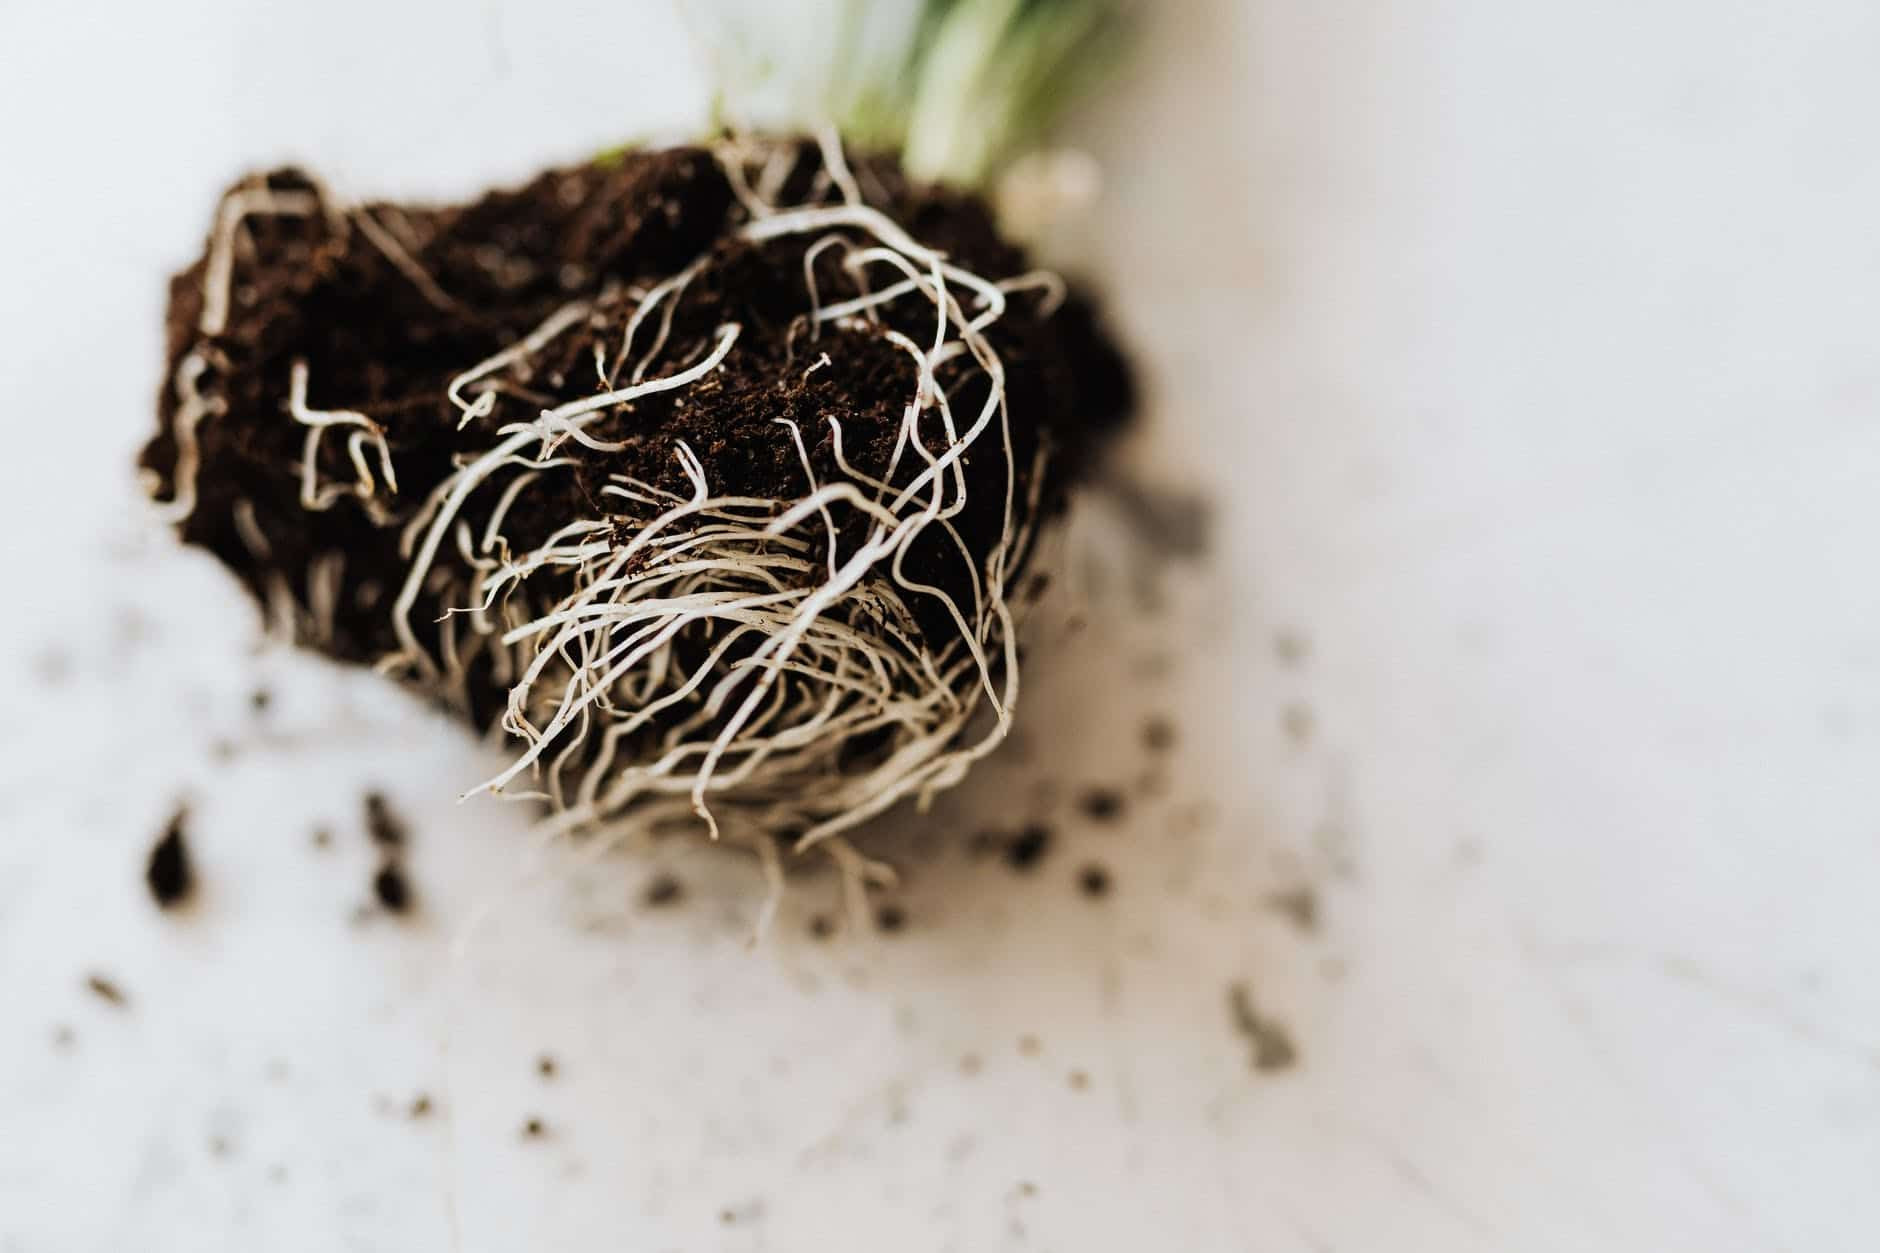 Carefully check roots to avoid further damage.